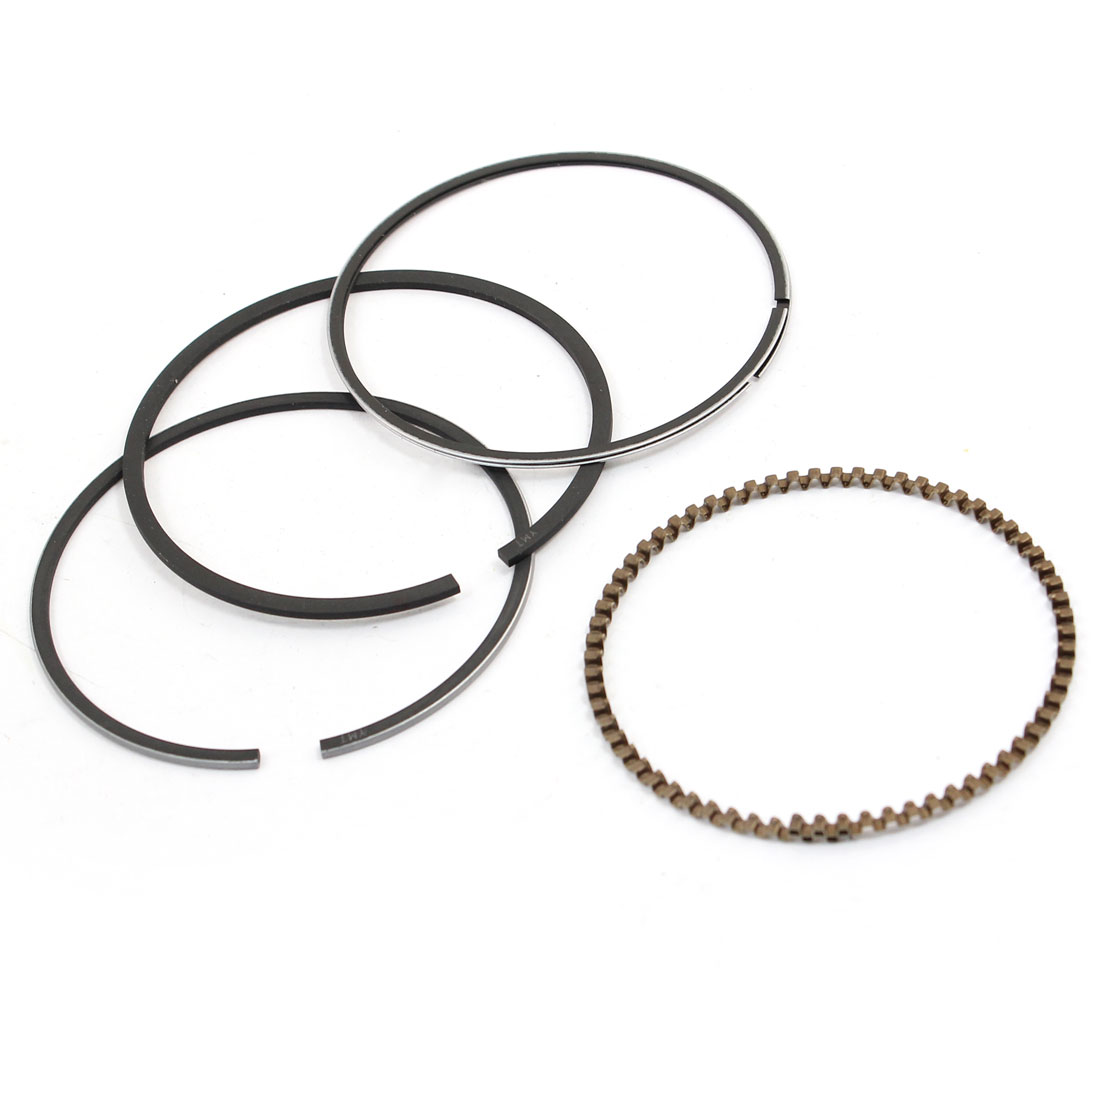 Unique Bargains Spare Part Piston Ring Set for China 168FA 168FB Gasoline Engine 5 in 1